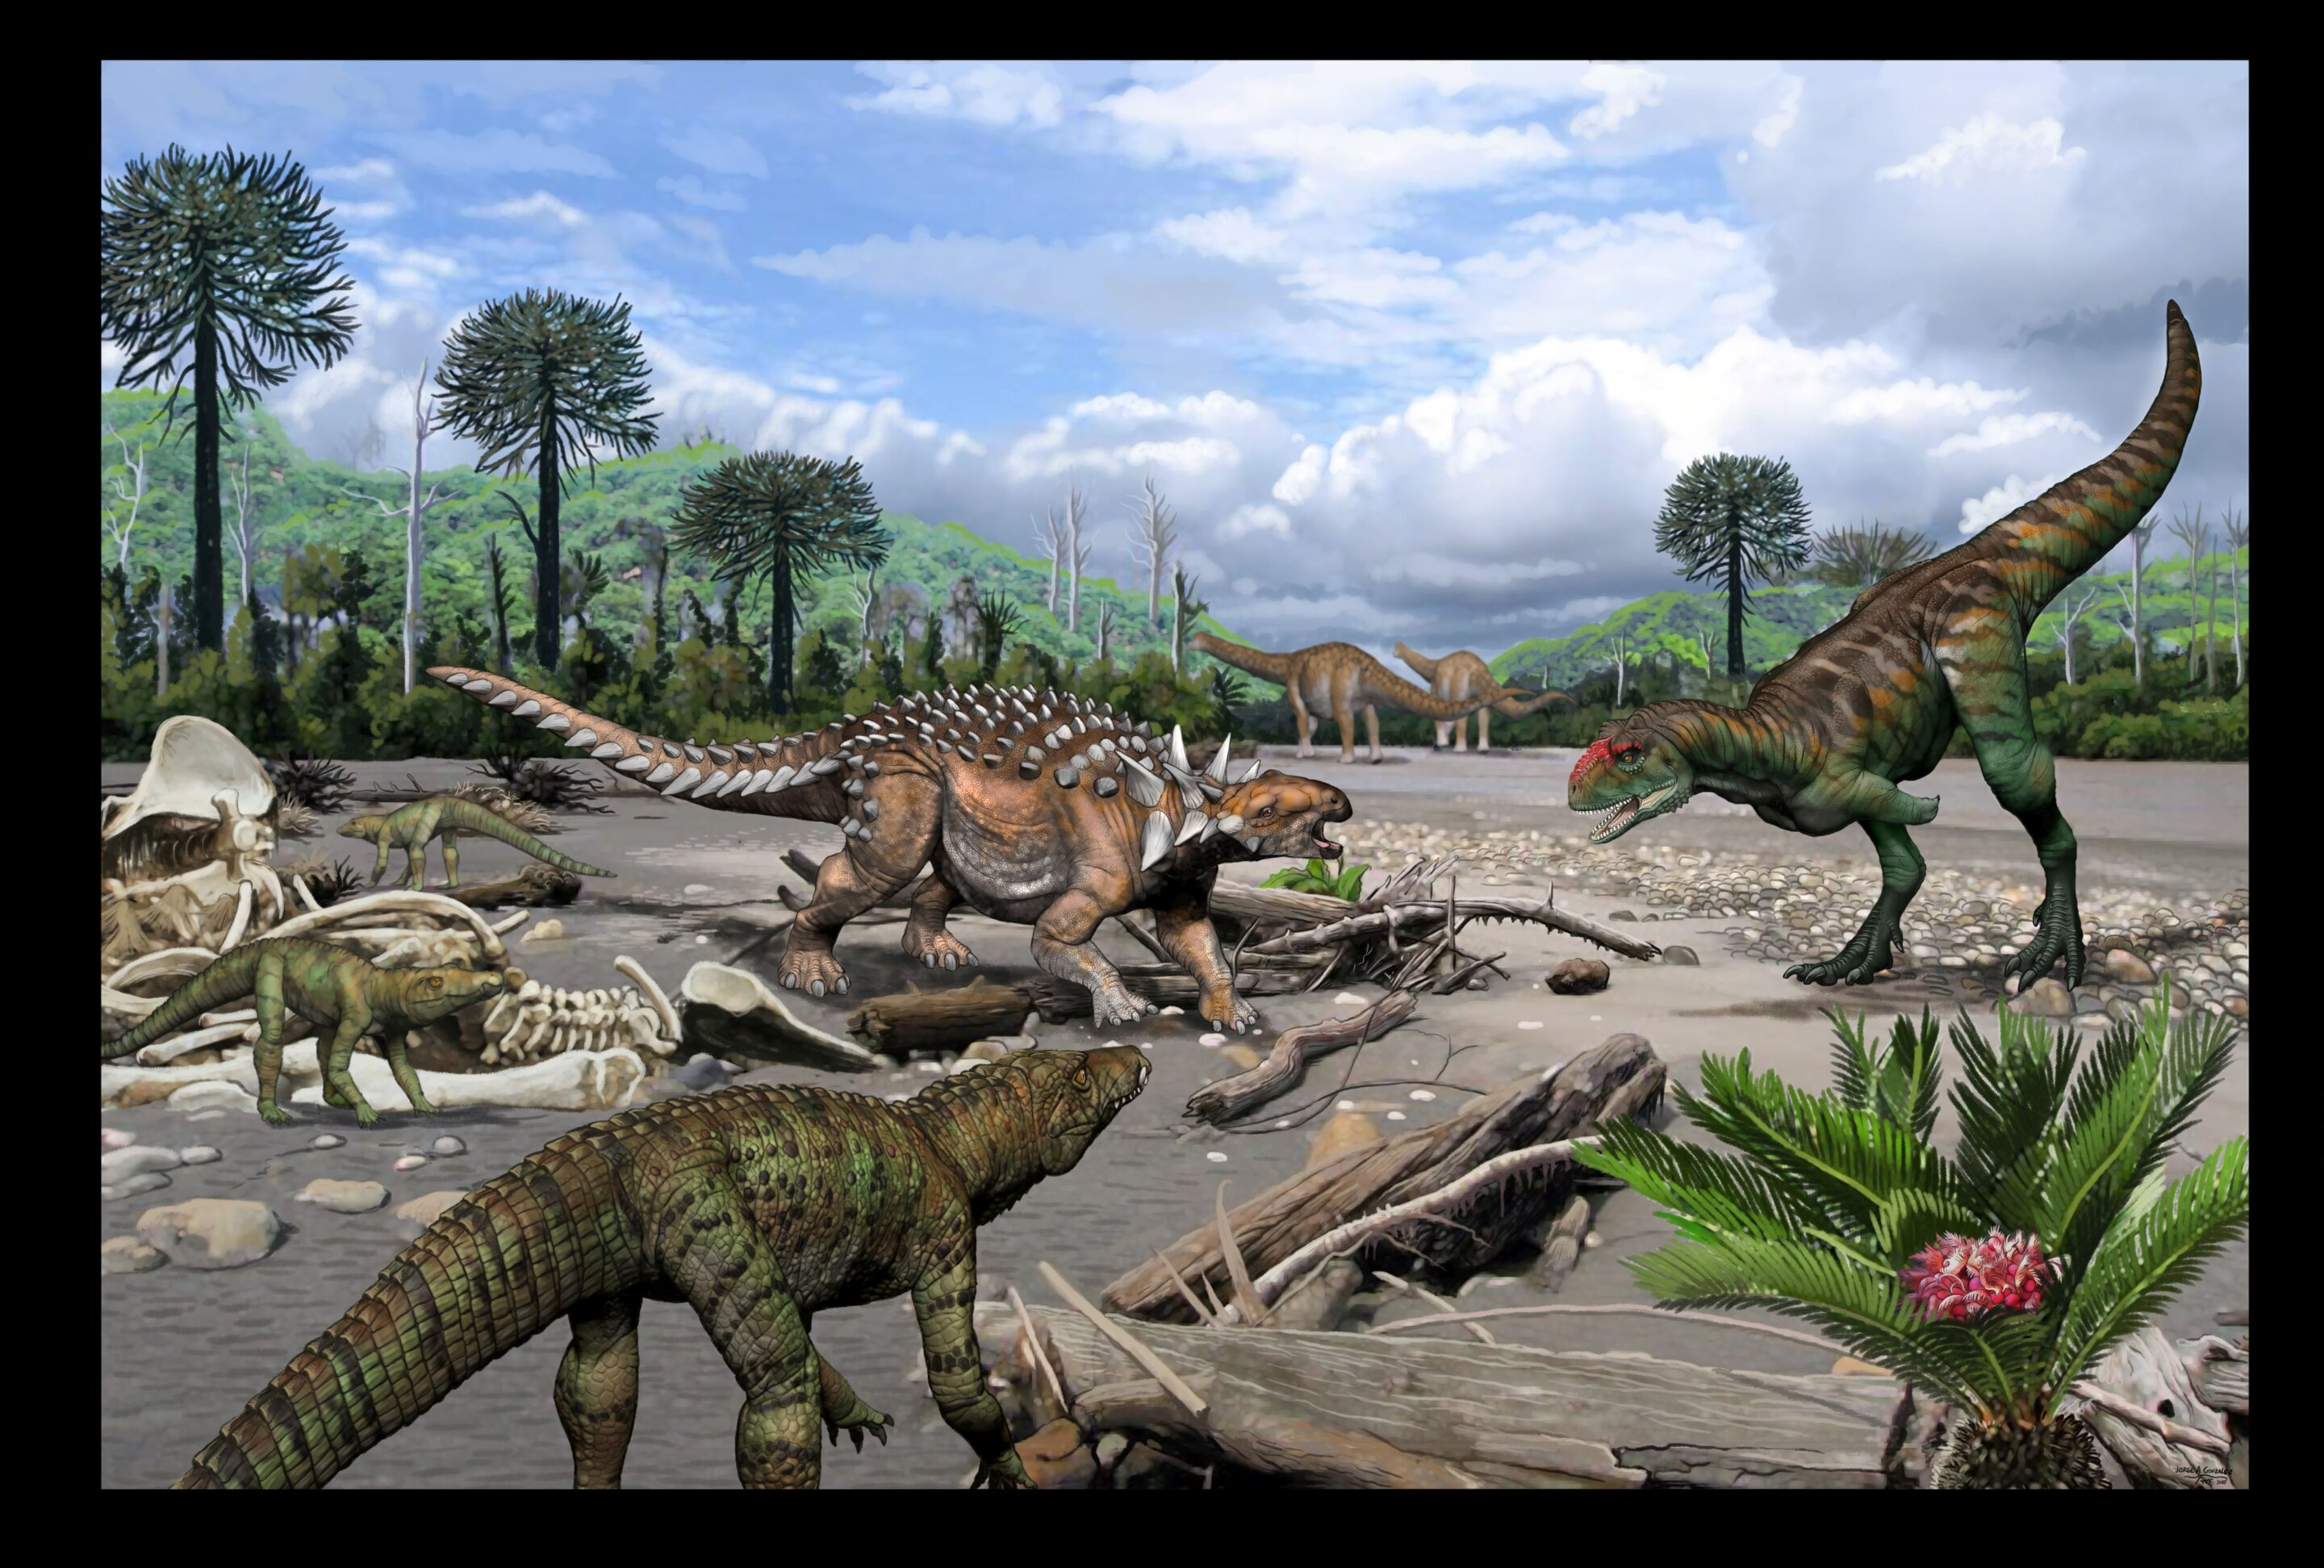 Ancient teeth reveal surprising diversity of Cretaceous reptiles at Argentina fossil site